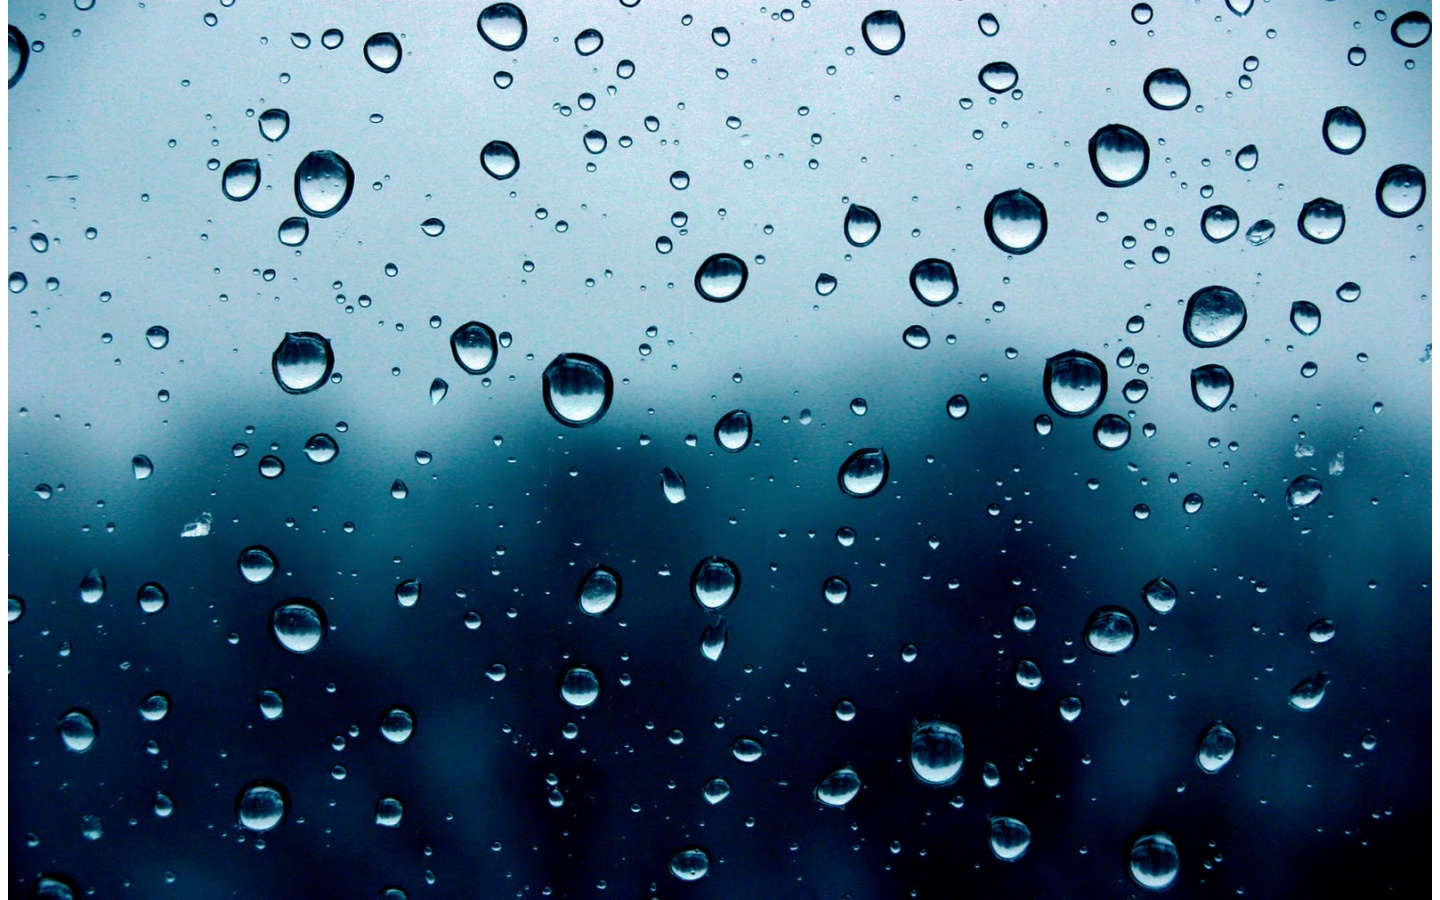 Raindrop clipart wallpaper. Raindrops on window hd